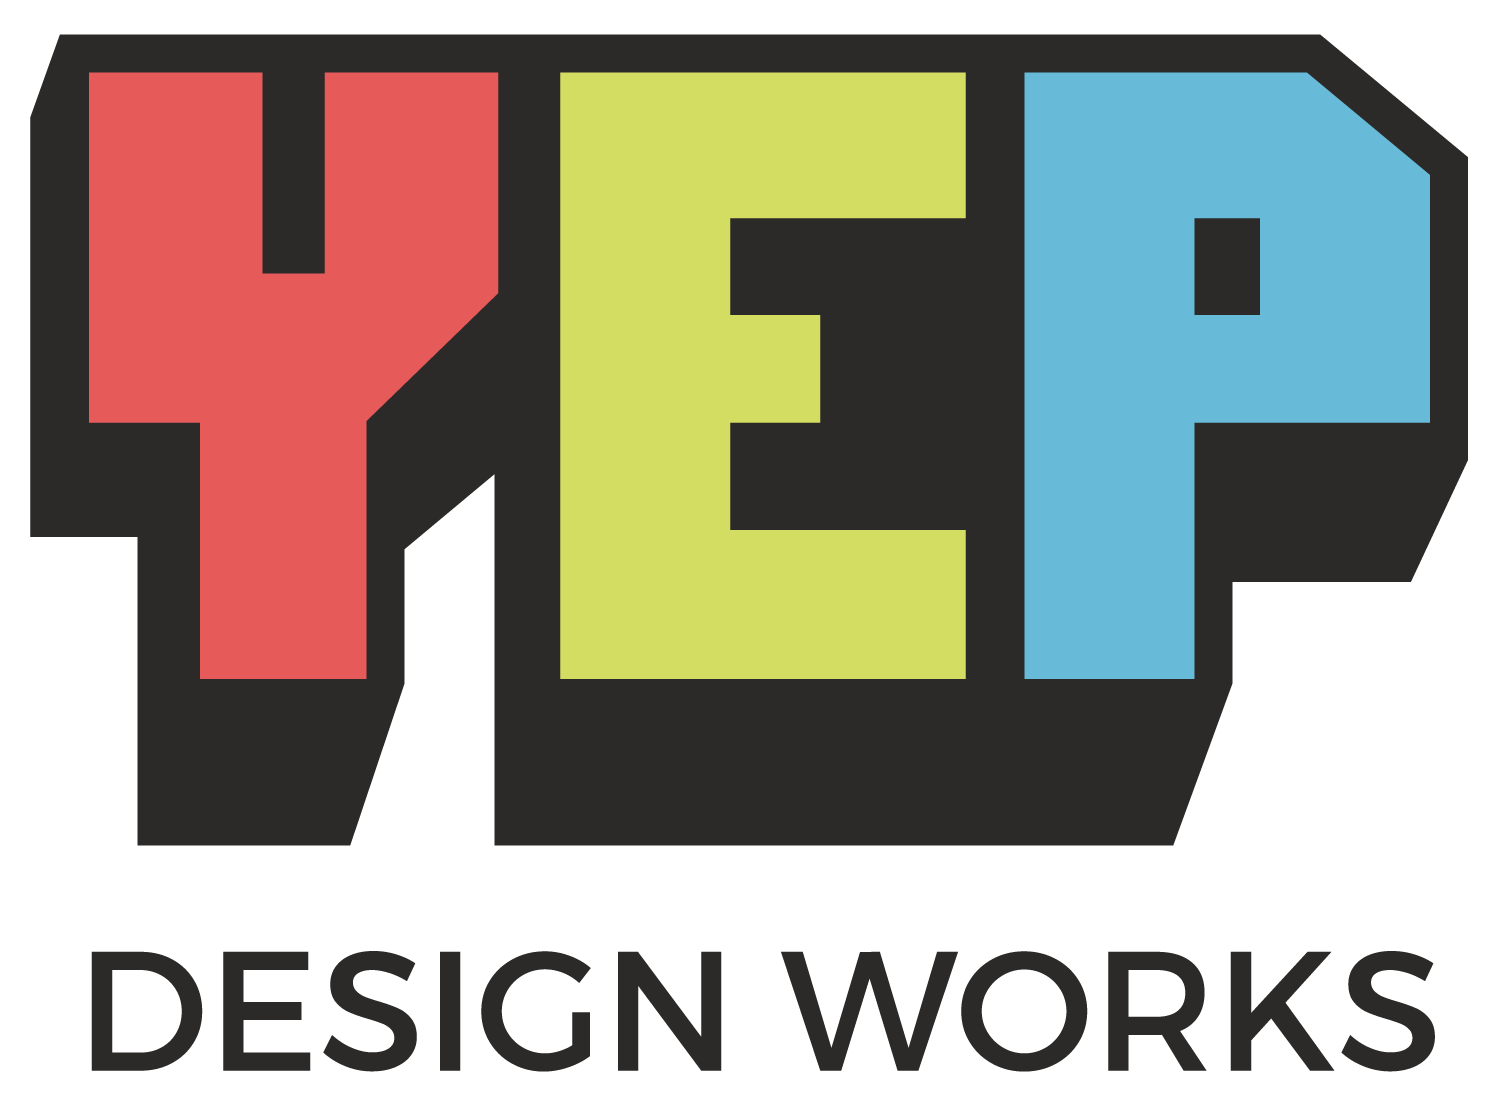 yep design works